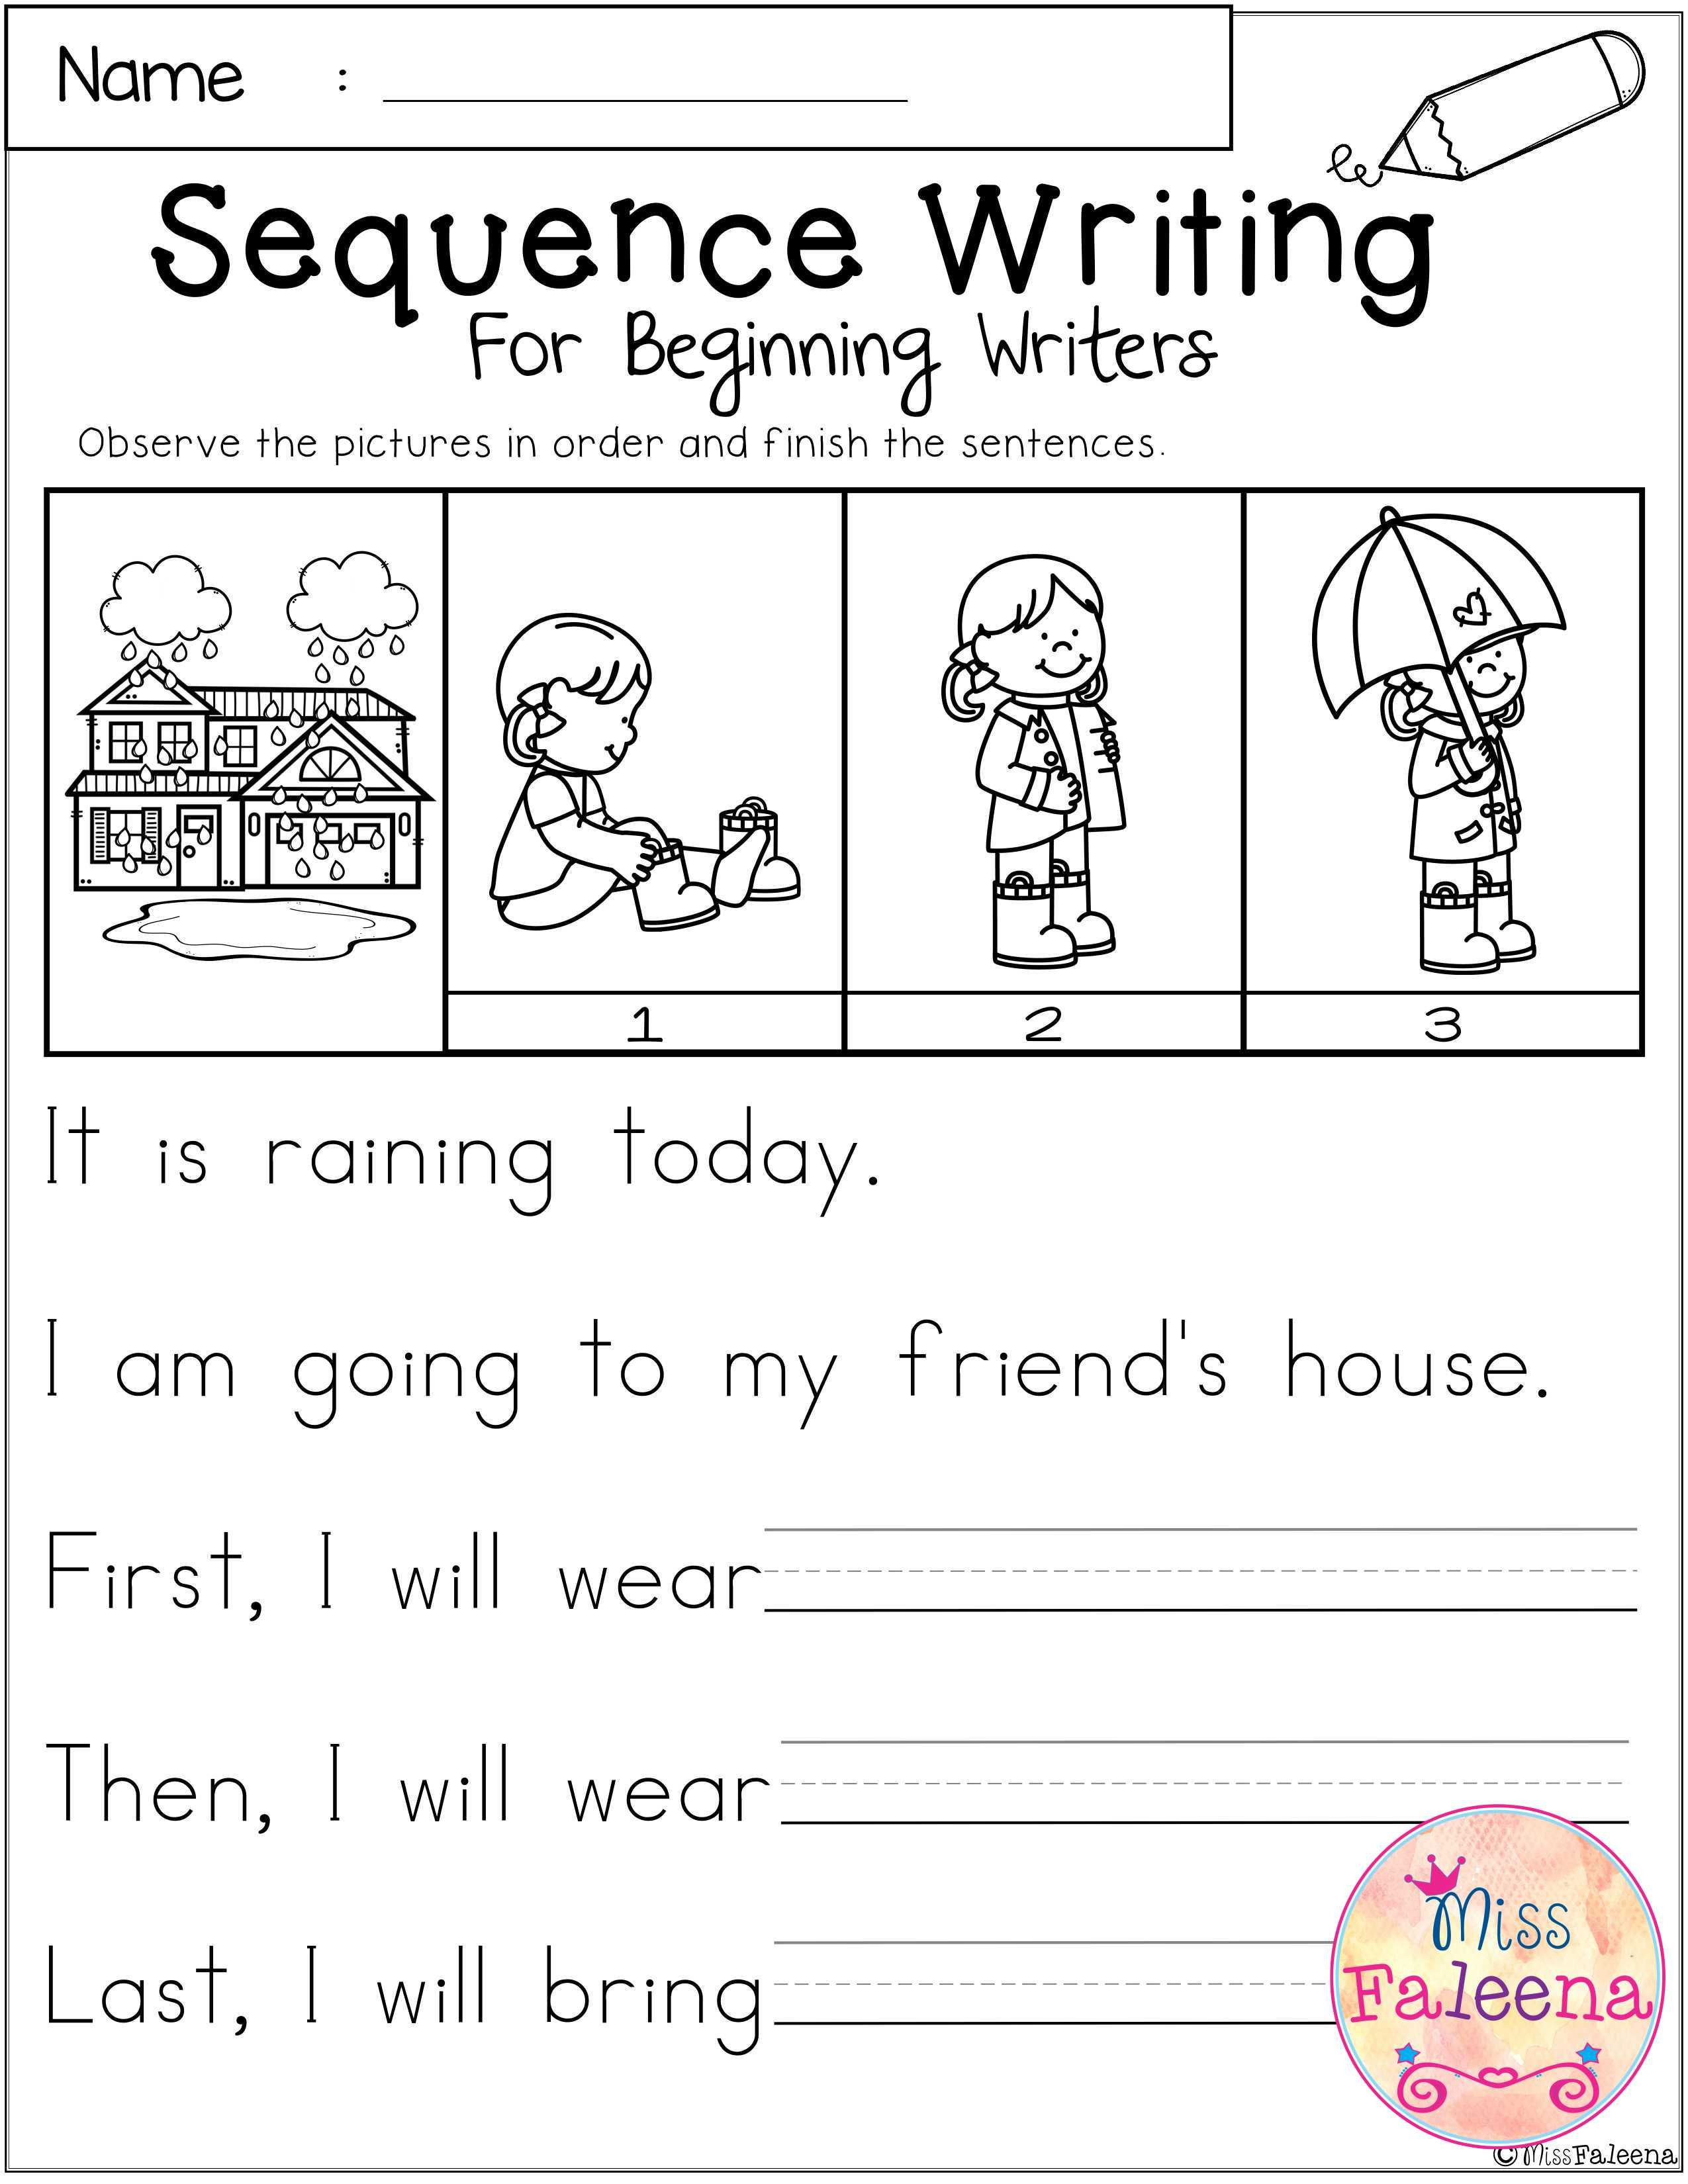 Sequence Worksheets 3rd Grade March Sequence Writing for Beginning Writers